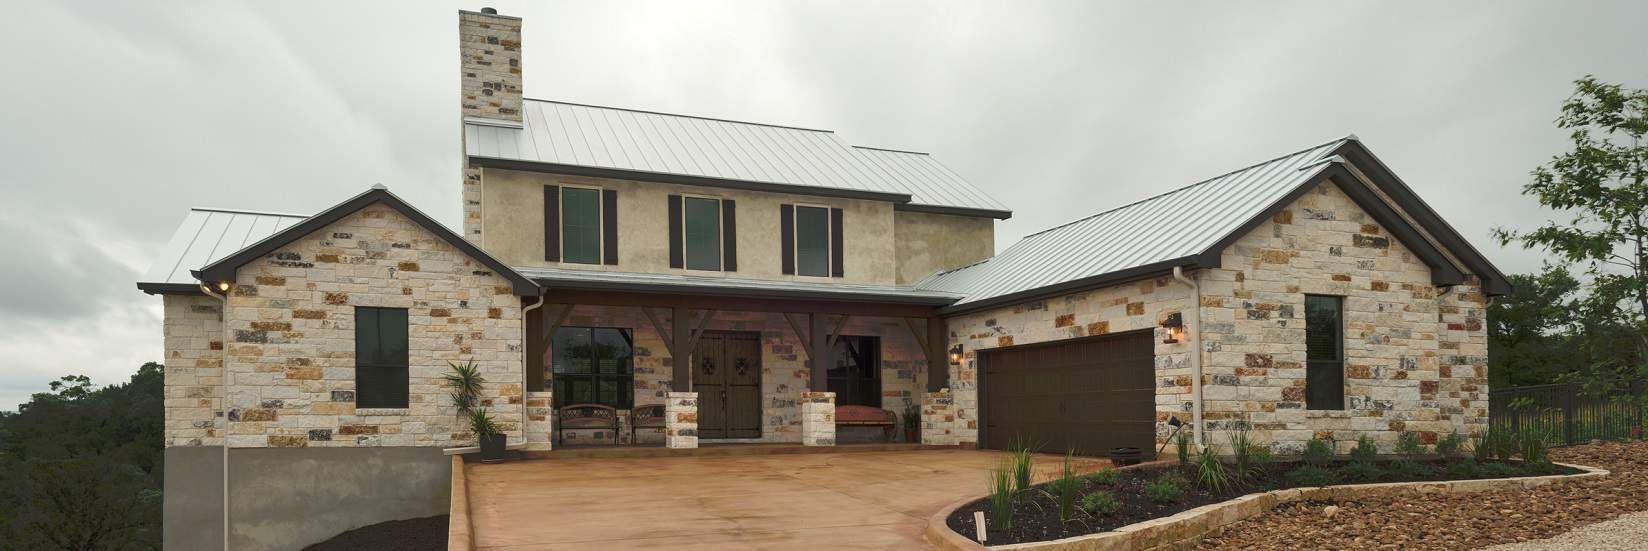 Best Kitchen Gallery: Custom Home Builder New Braunfels San Antonio Hill Country of Hill Country Home Designs  on rachelxblog.com